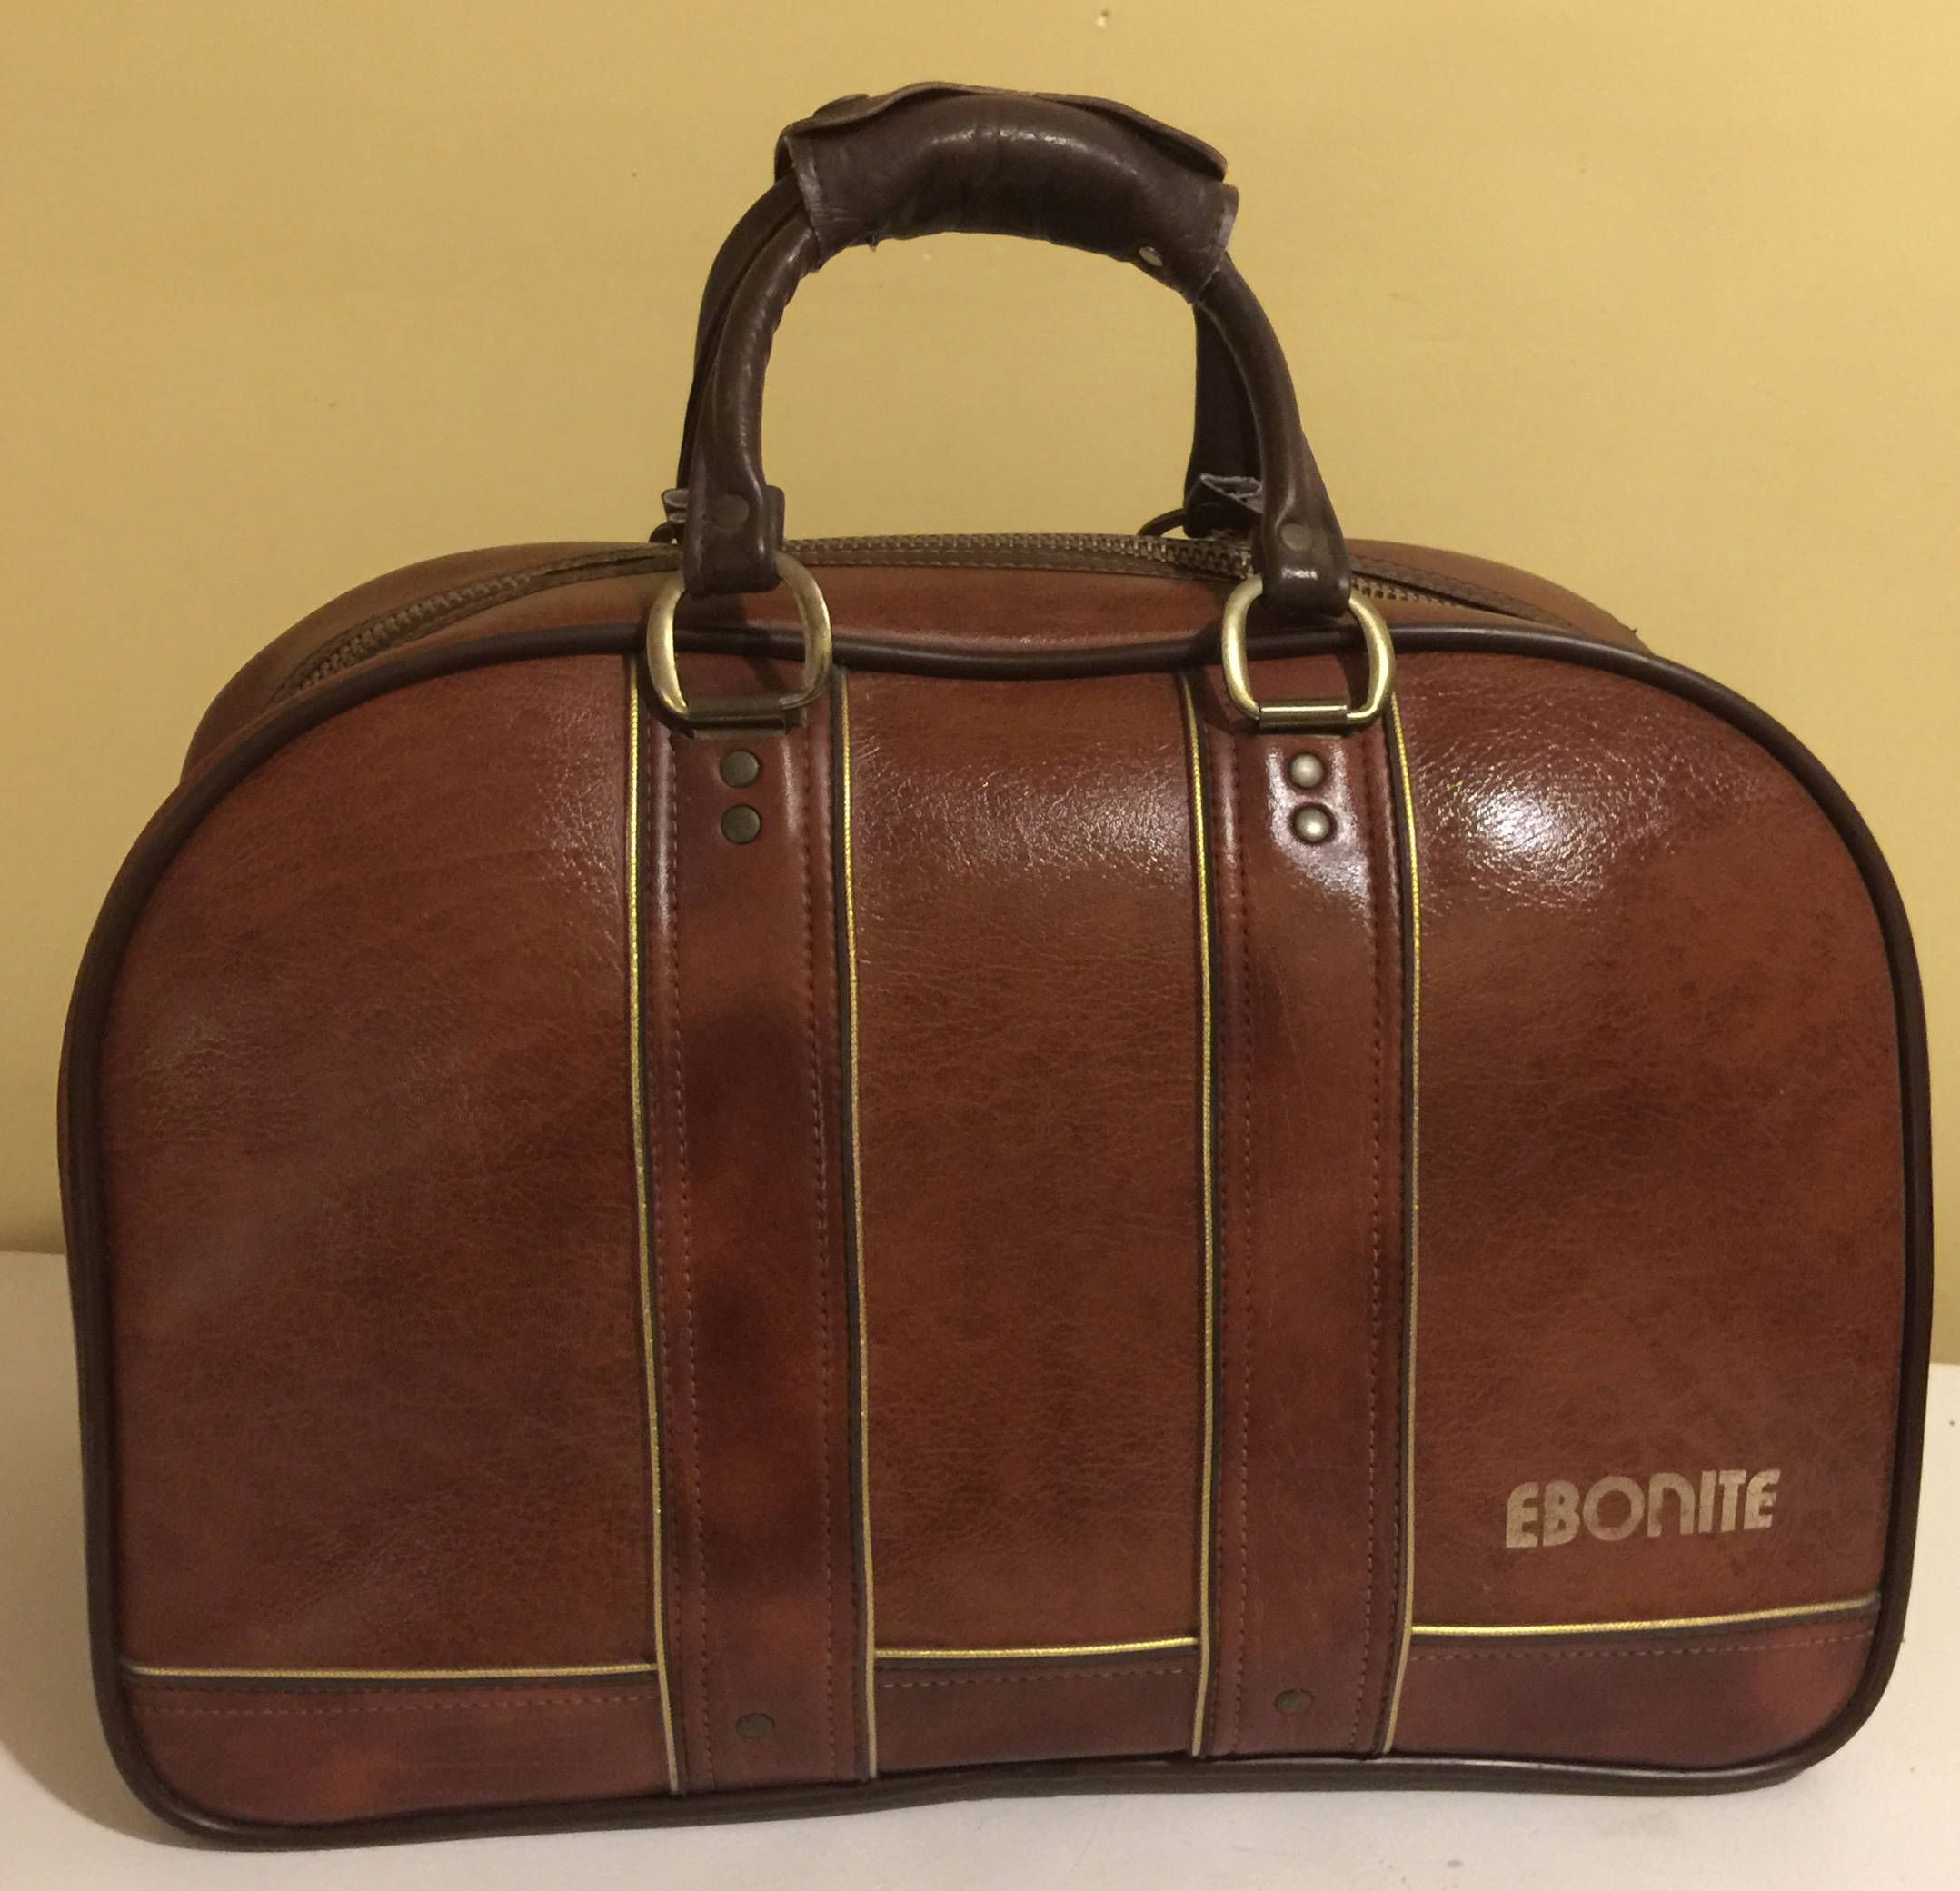 Vintage Ebonite Bowling Bag 2 Ball Brown With Gold Trim Is Straight From The 80 S By Gdtreasures On Etsy Bowling Bags Bags Leather Backpack